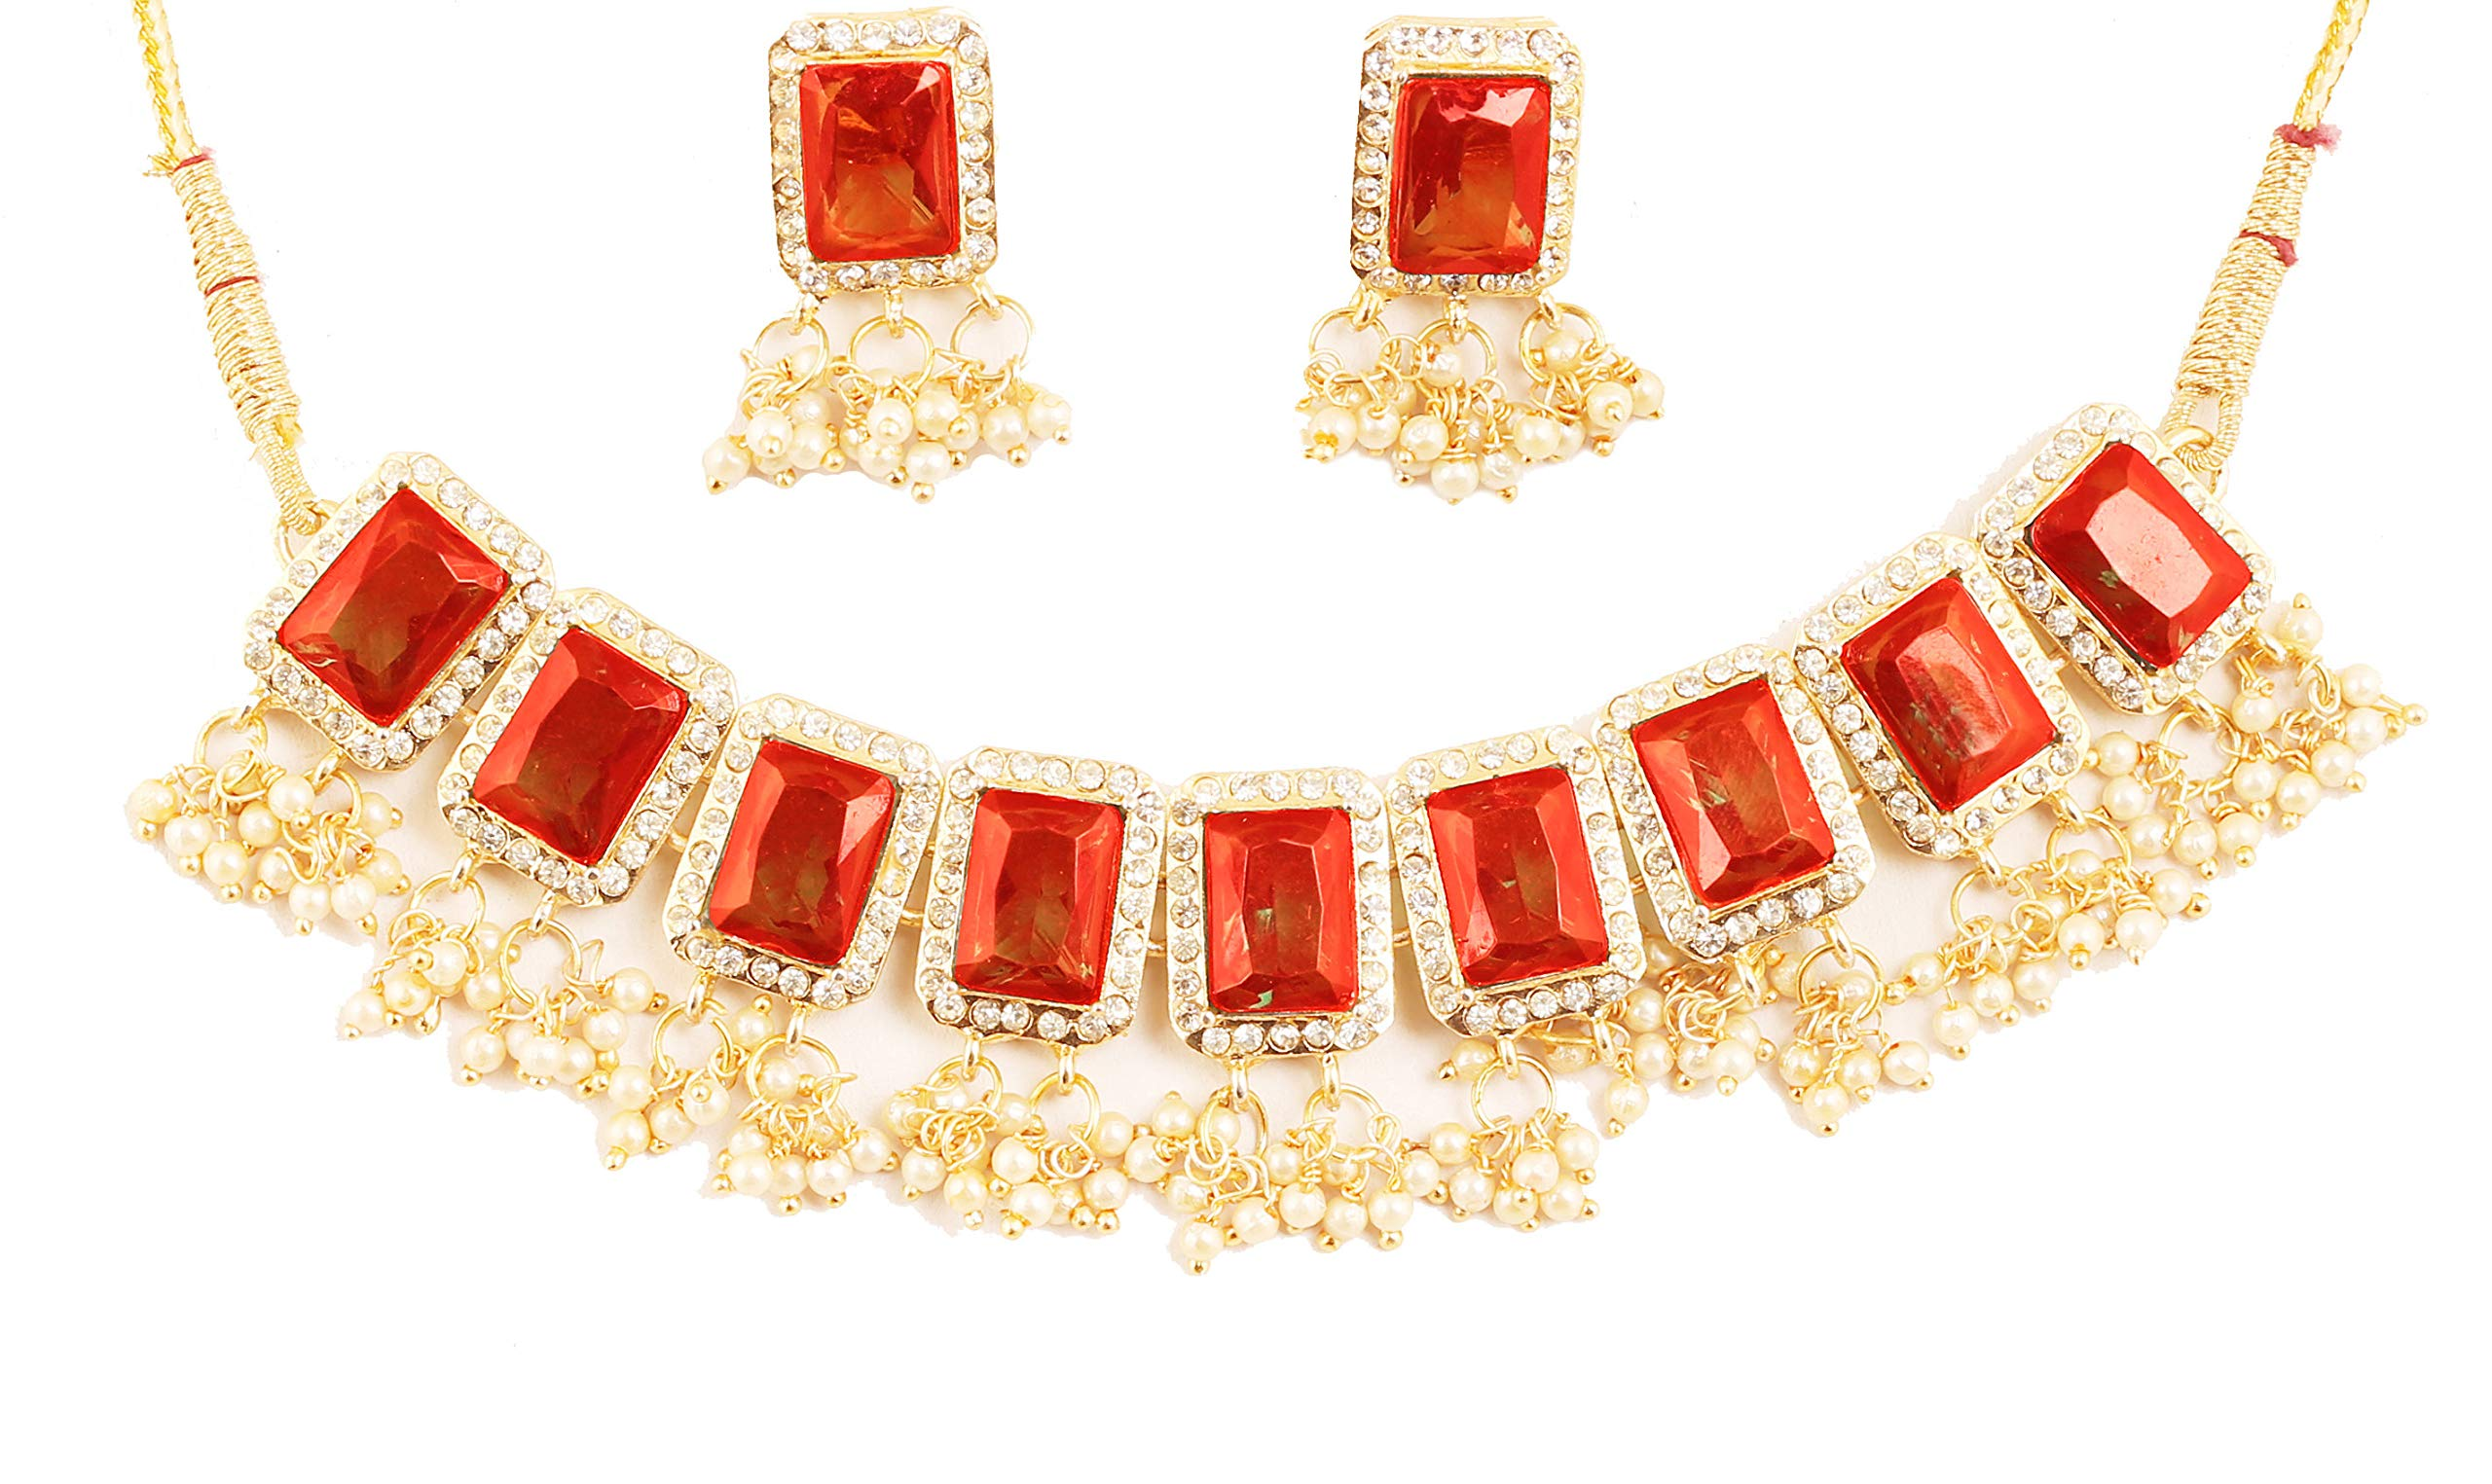 Touchstone NEW Indian Bollywood Studded Style Rectangular Shape Red Faux Ruby And Faux Pearls Bunches Designer Jewelry Bridal Choker Necklace Set In Gold Tone For Women.